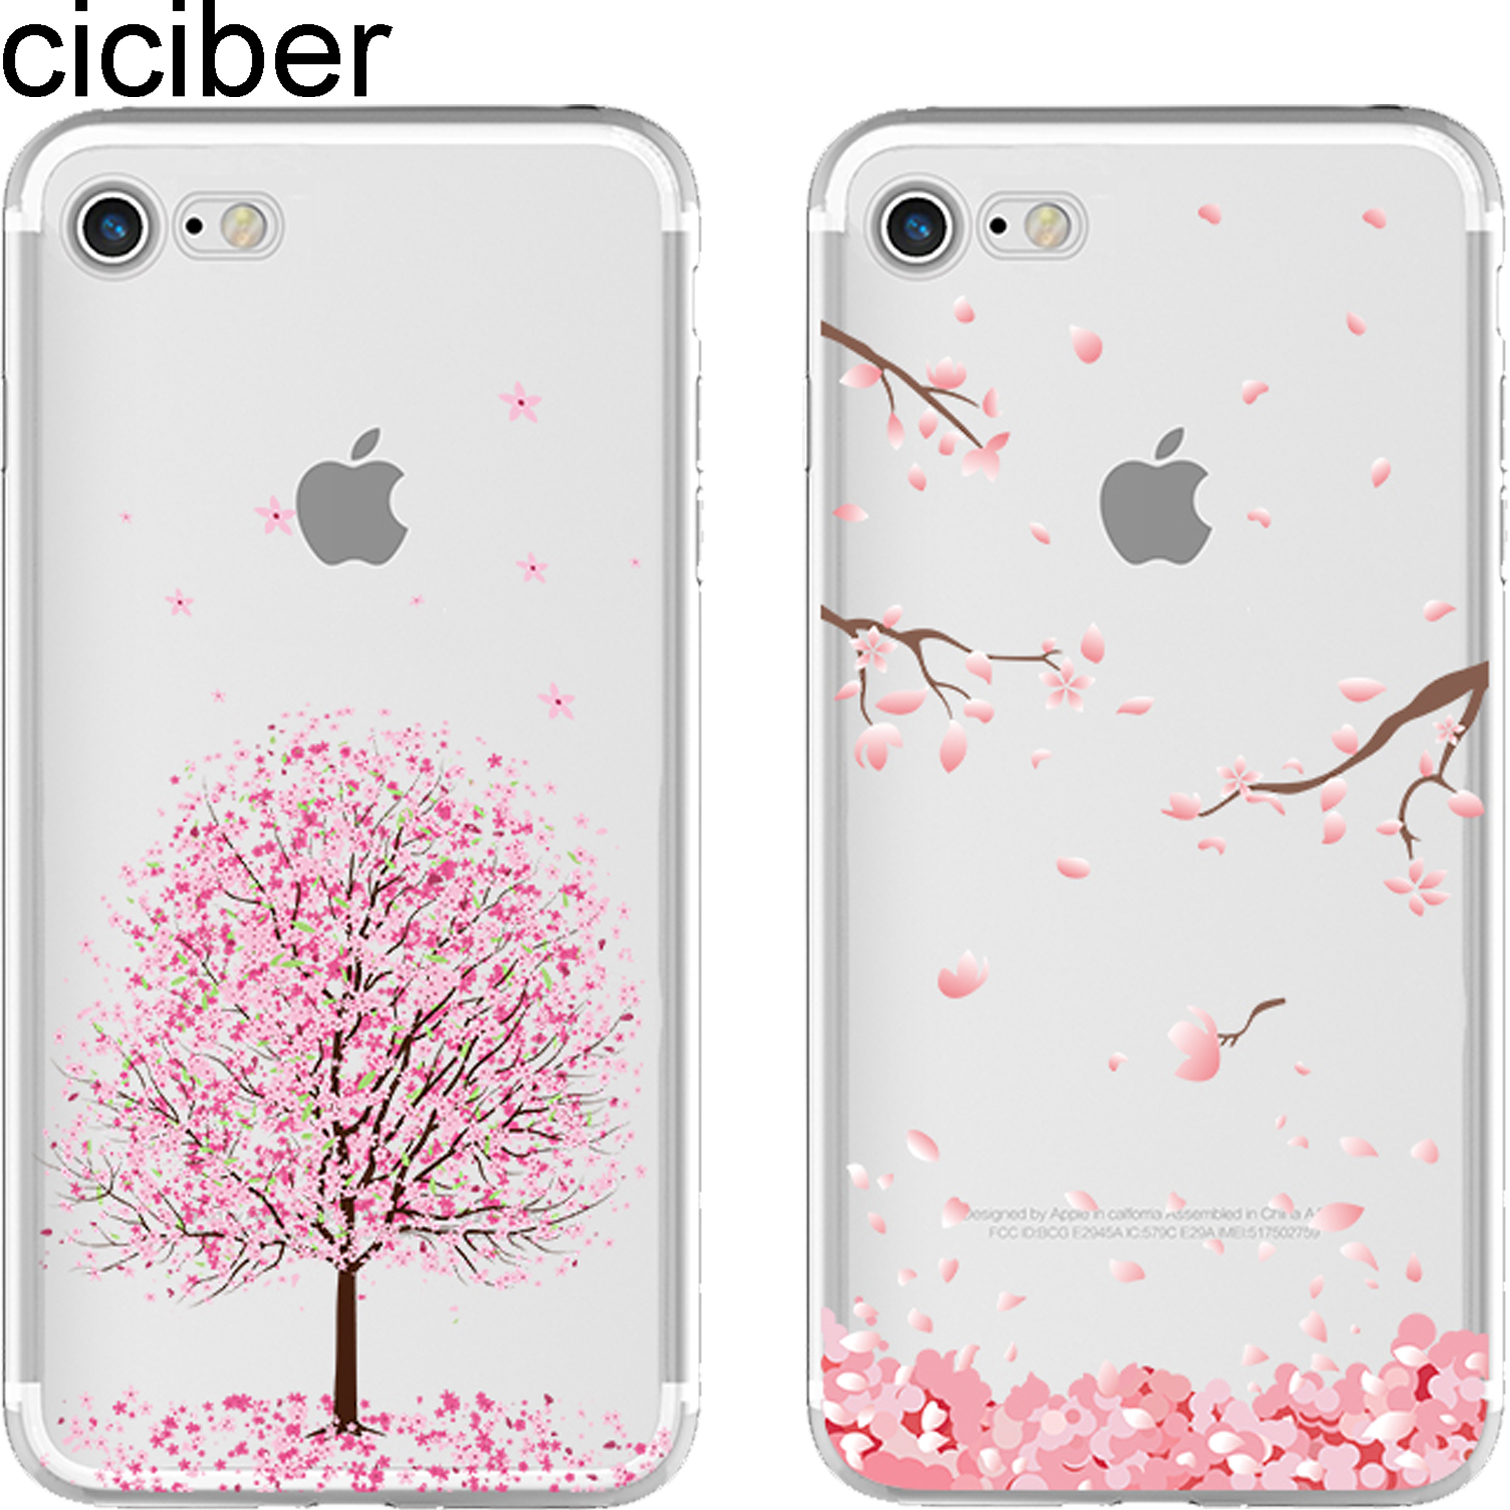 ciciber Romantic Sweet Cherry Blossom Cat Soft TPU Phone Cases Cover for IPhone 11 Pro Max 6 6S 7 8 Plus 5S SE X XR XS Max Funda